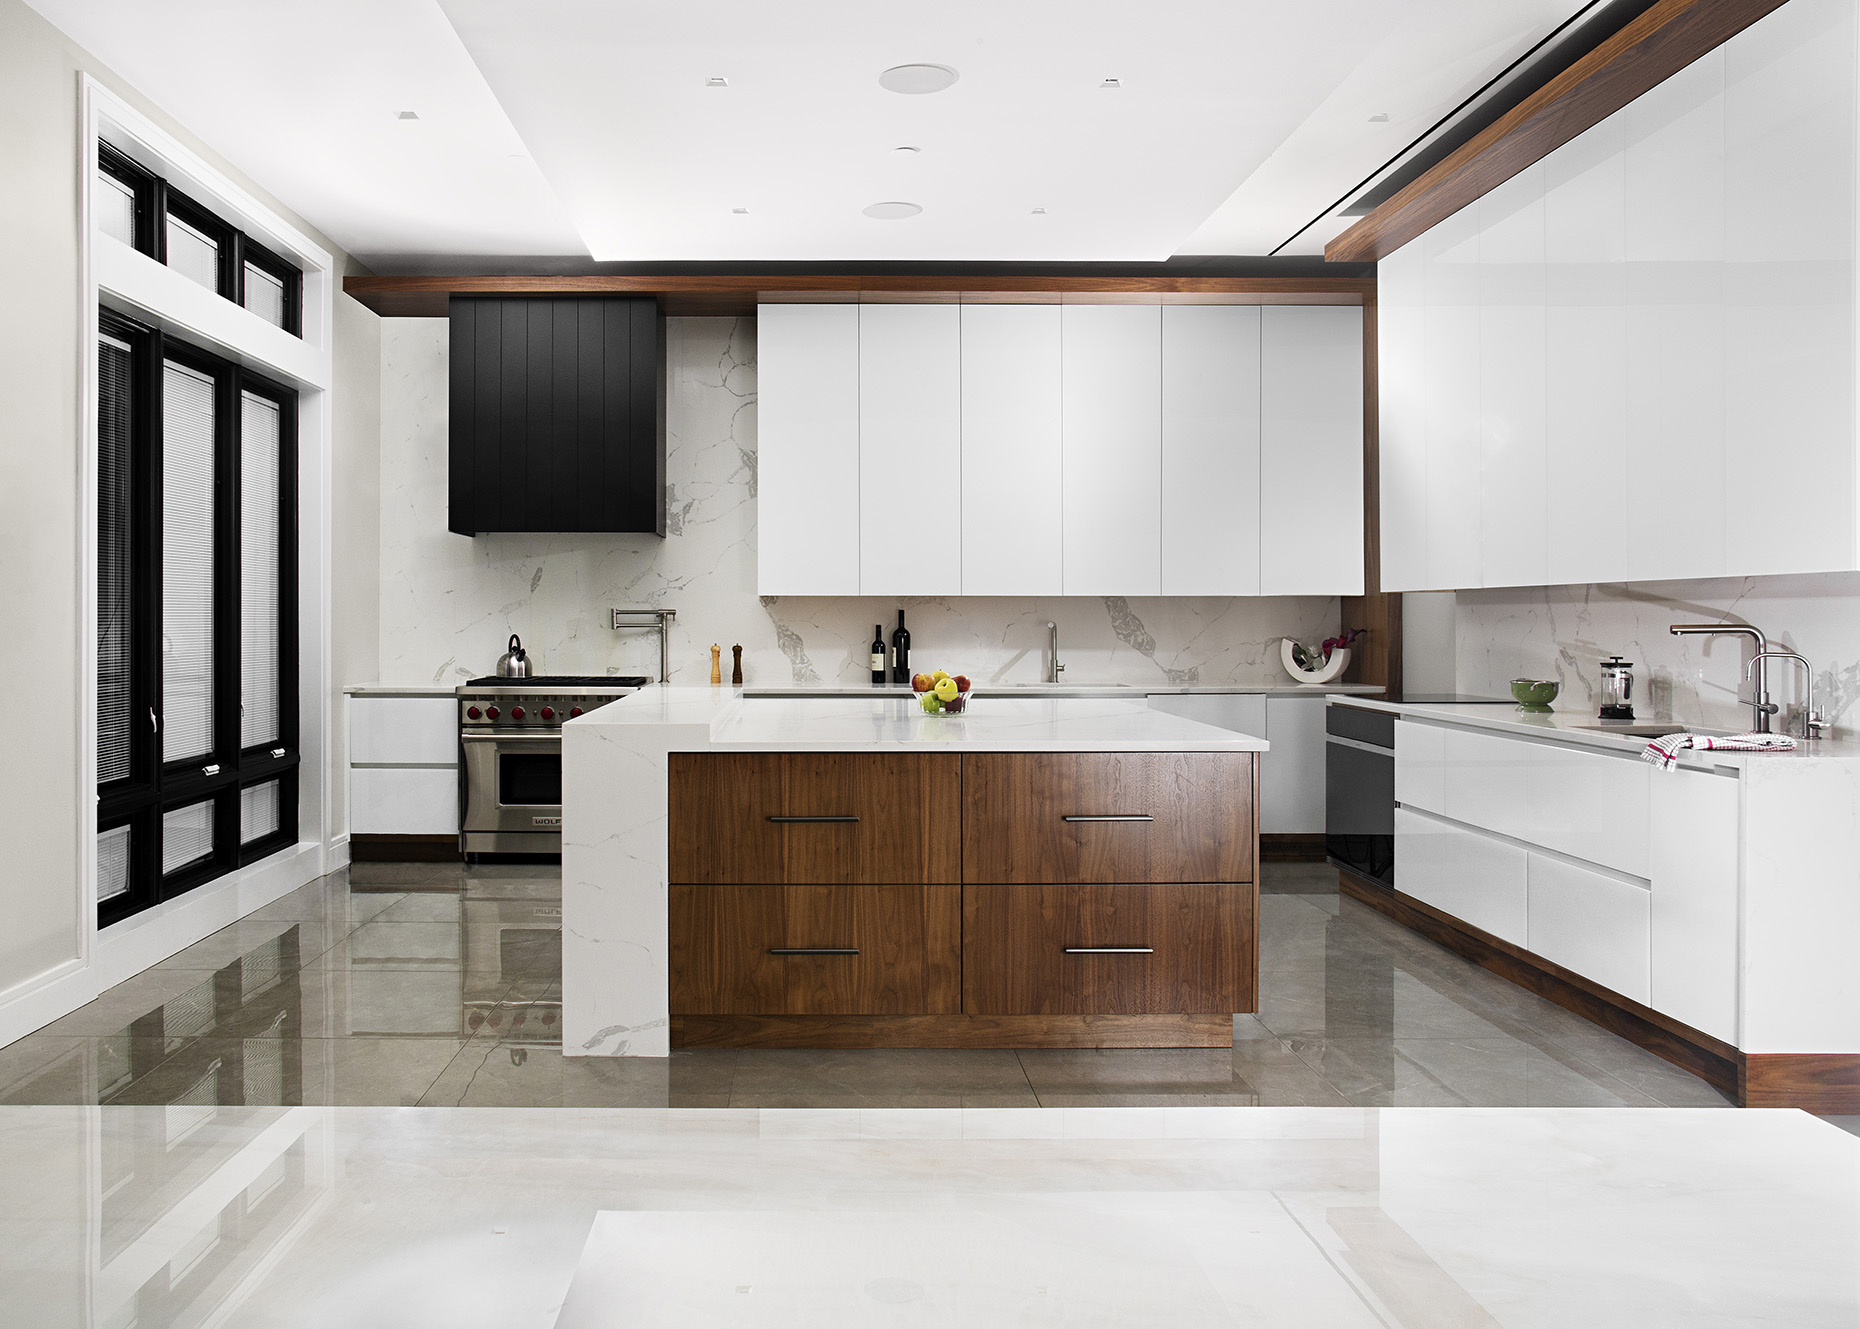 New-york-interior-photographer-kitchen-design-photography